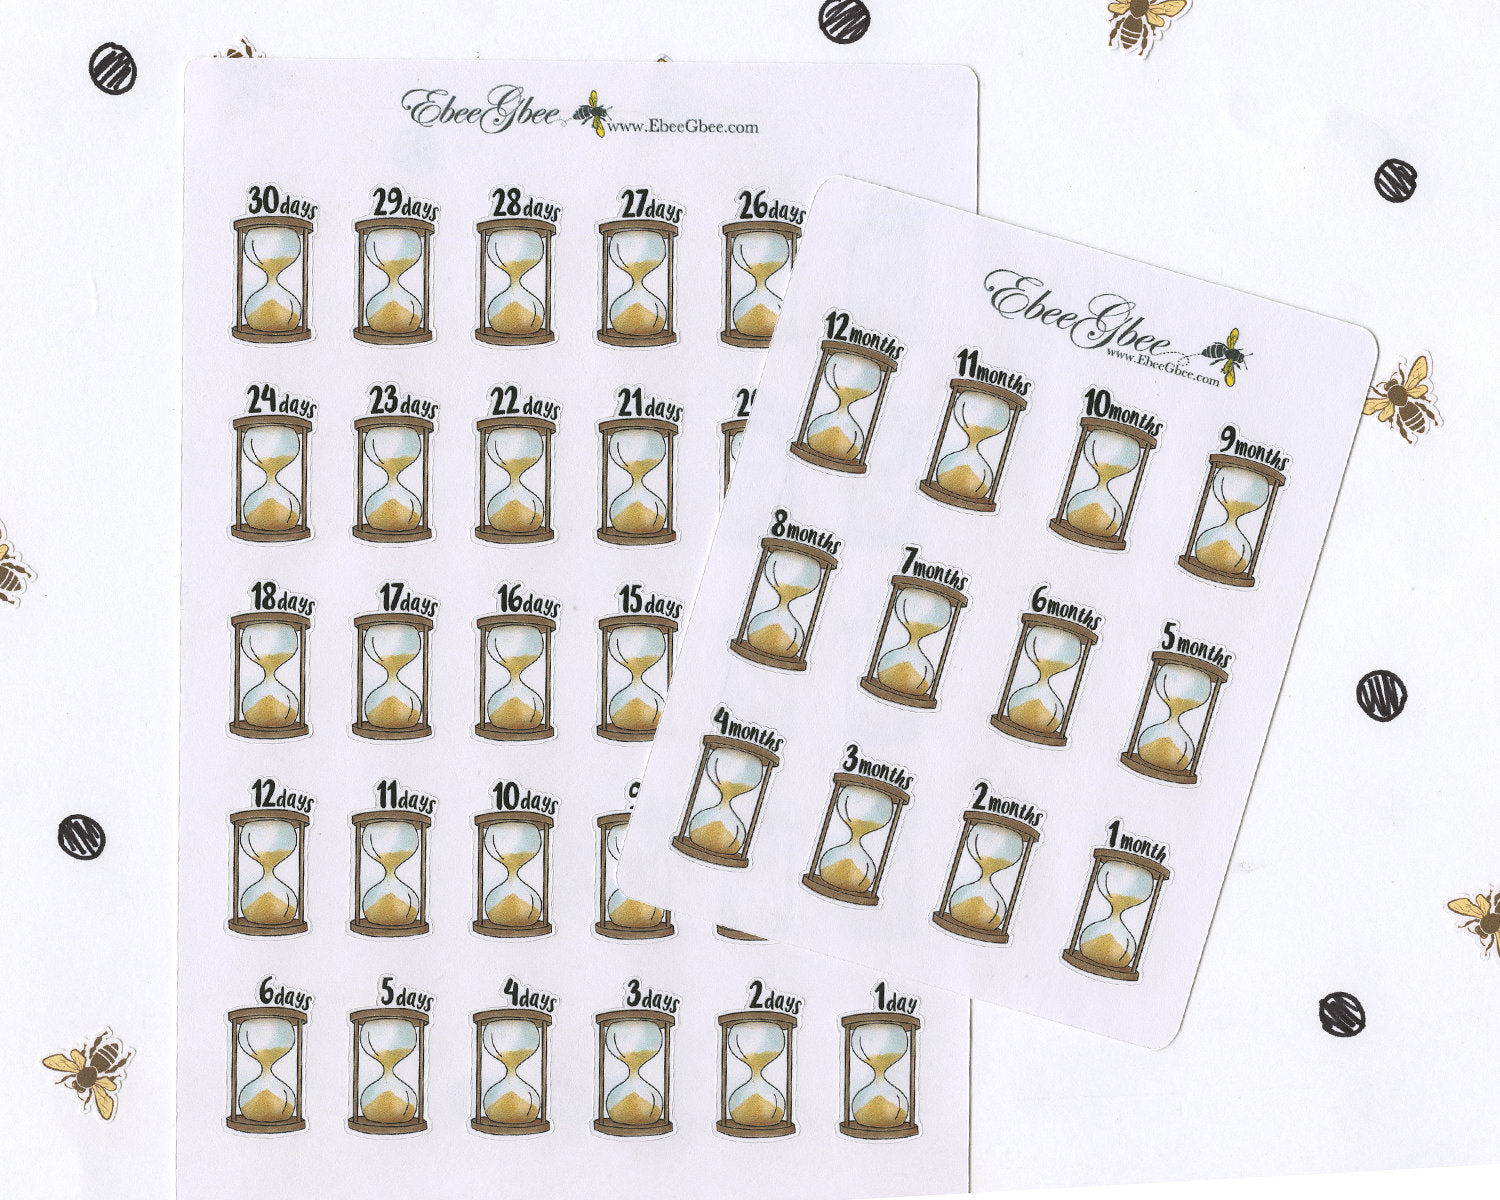 HOURGLASS COUNTDOWN Planner Stickers | Hand Drawn